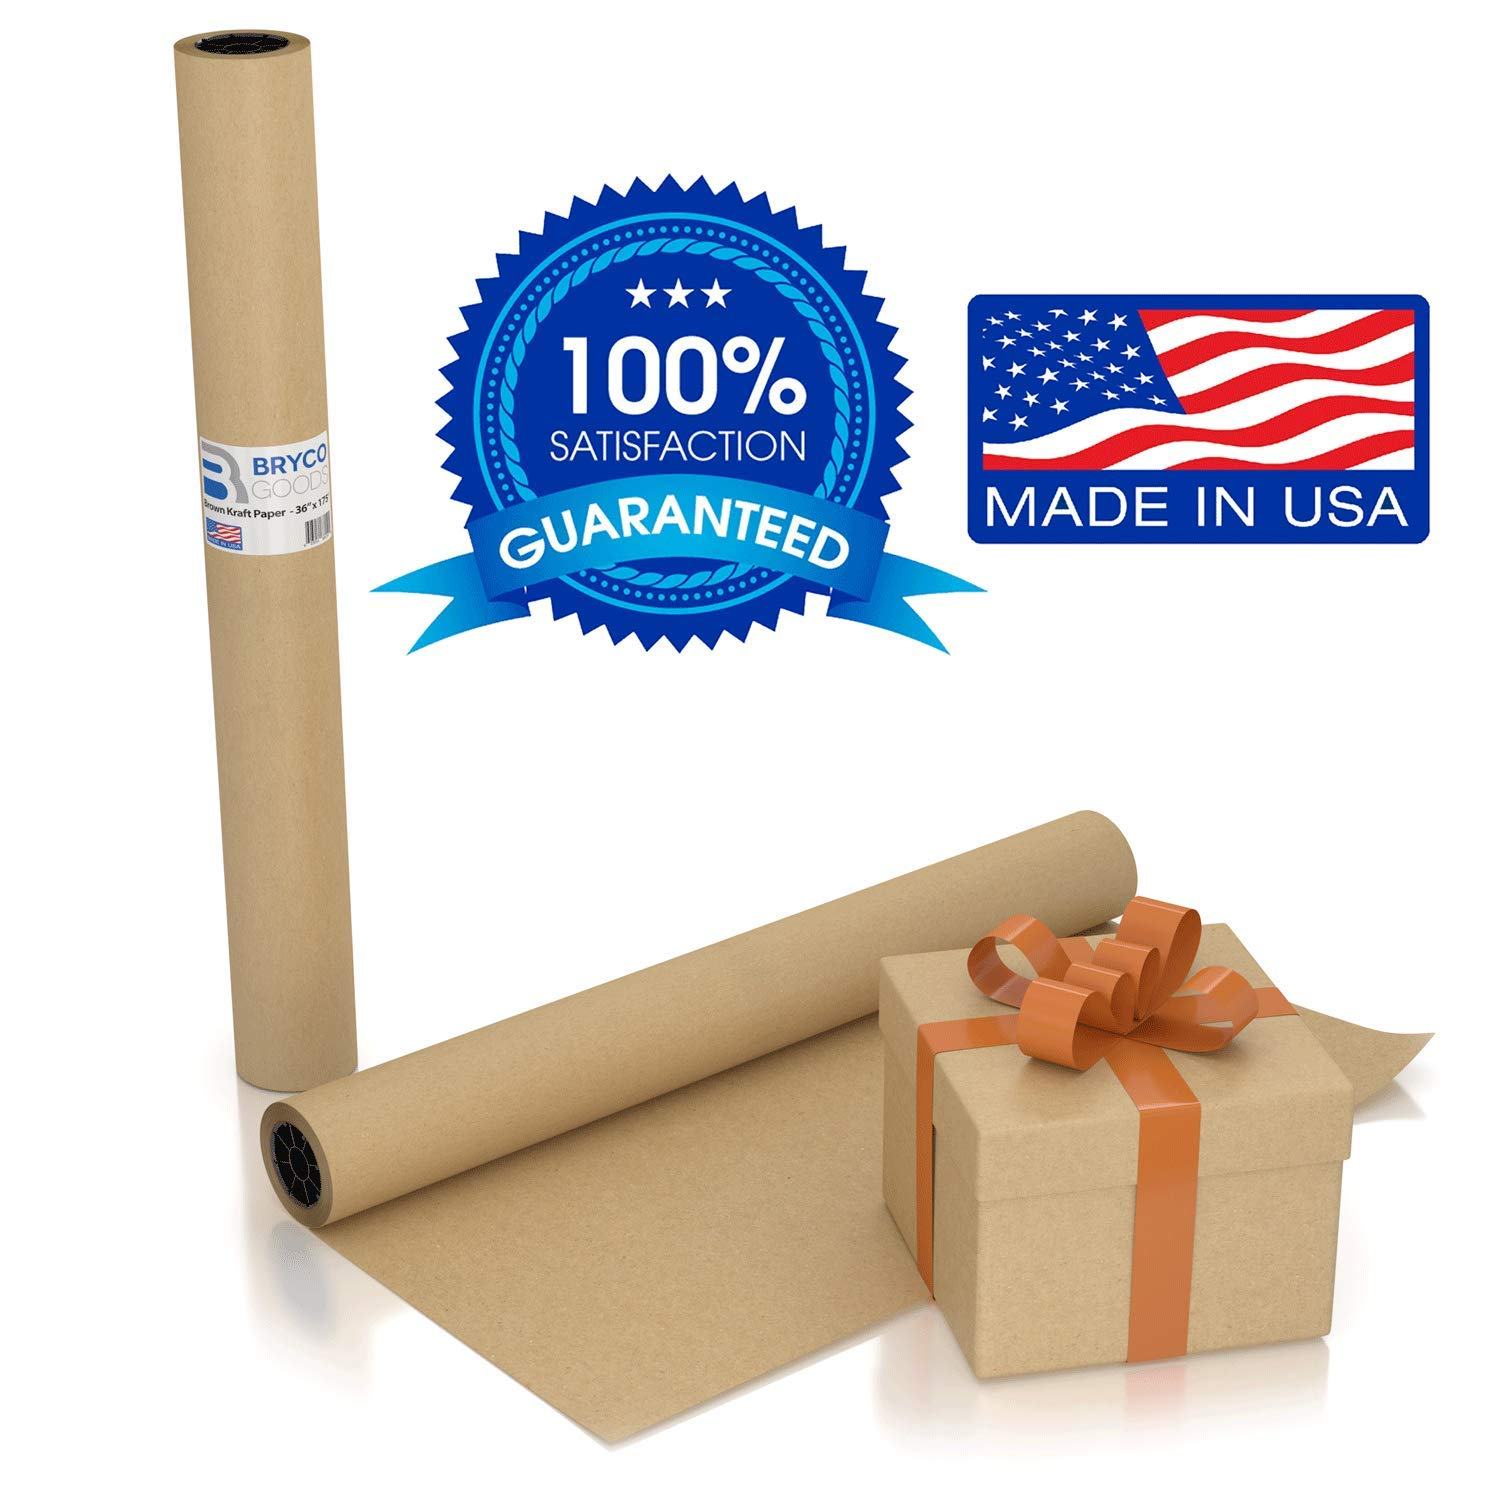 Large Brown Kraft Paper Roll - 36'' x 1200'' (100 ft) - Made in The USA - Ideal for Gift Wrapping, Packing, Moving, Postal, Shipping, Parcel, Wall Art, Crafts, Bulletin Boards, Floor Cover, Table Runner